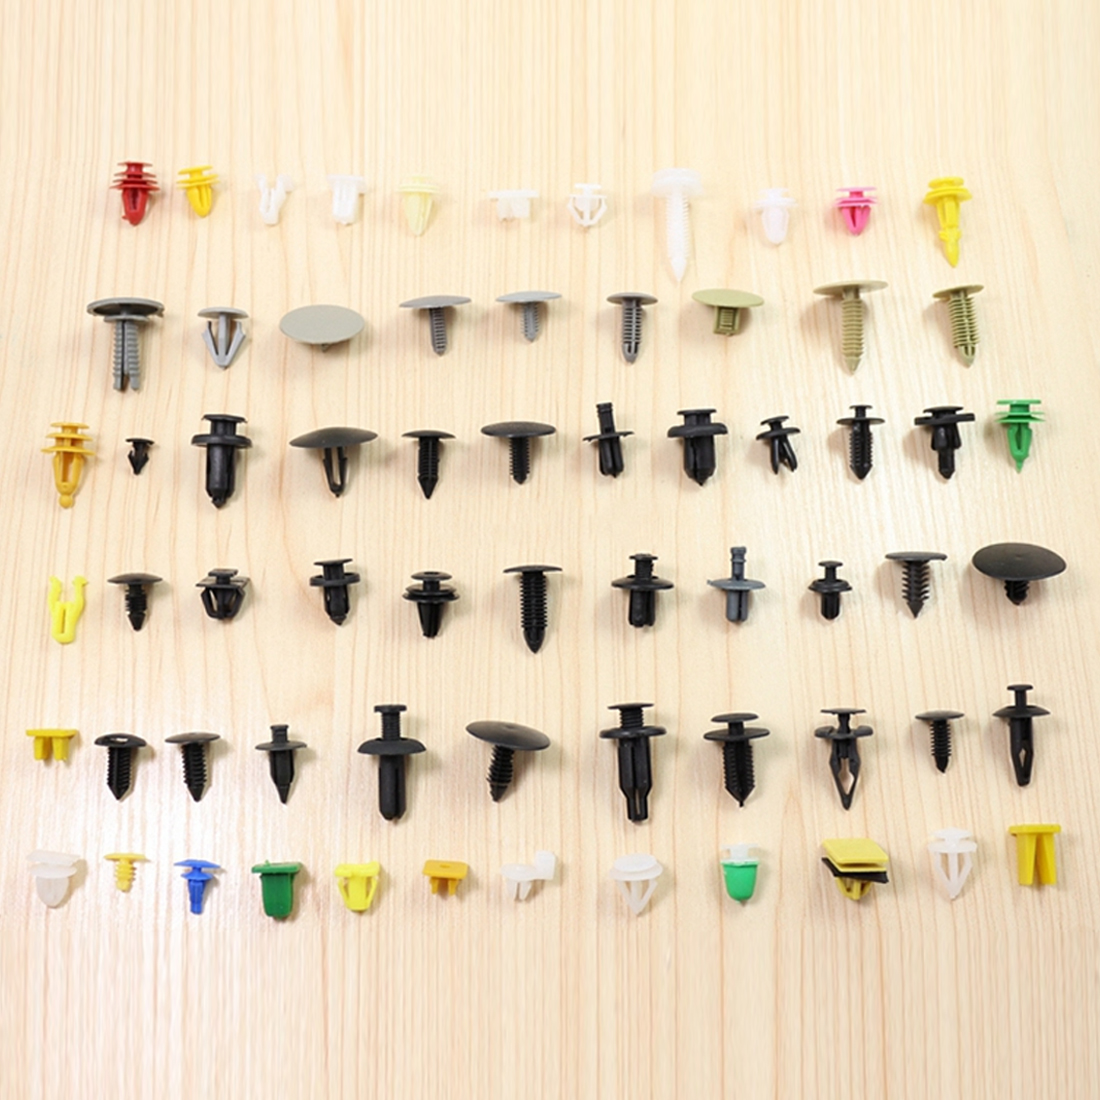 Dewtreetali Universal Auto Fastener Car Bumper Clip 100/200pcs Mixed Vehicle Retainer Rivet Door Panel Fender Liner Car Stylin